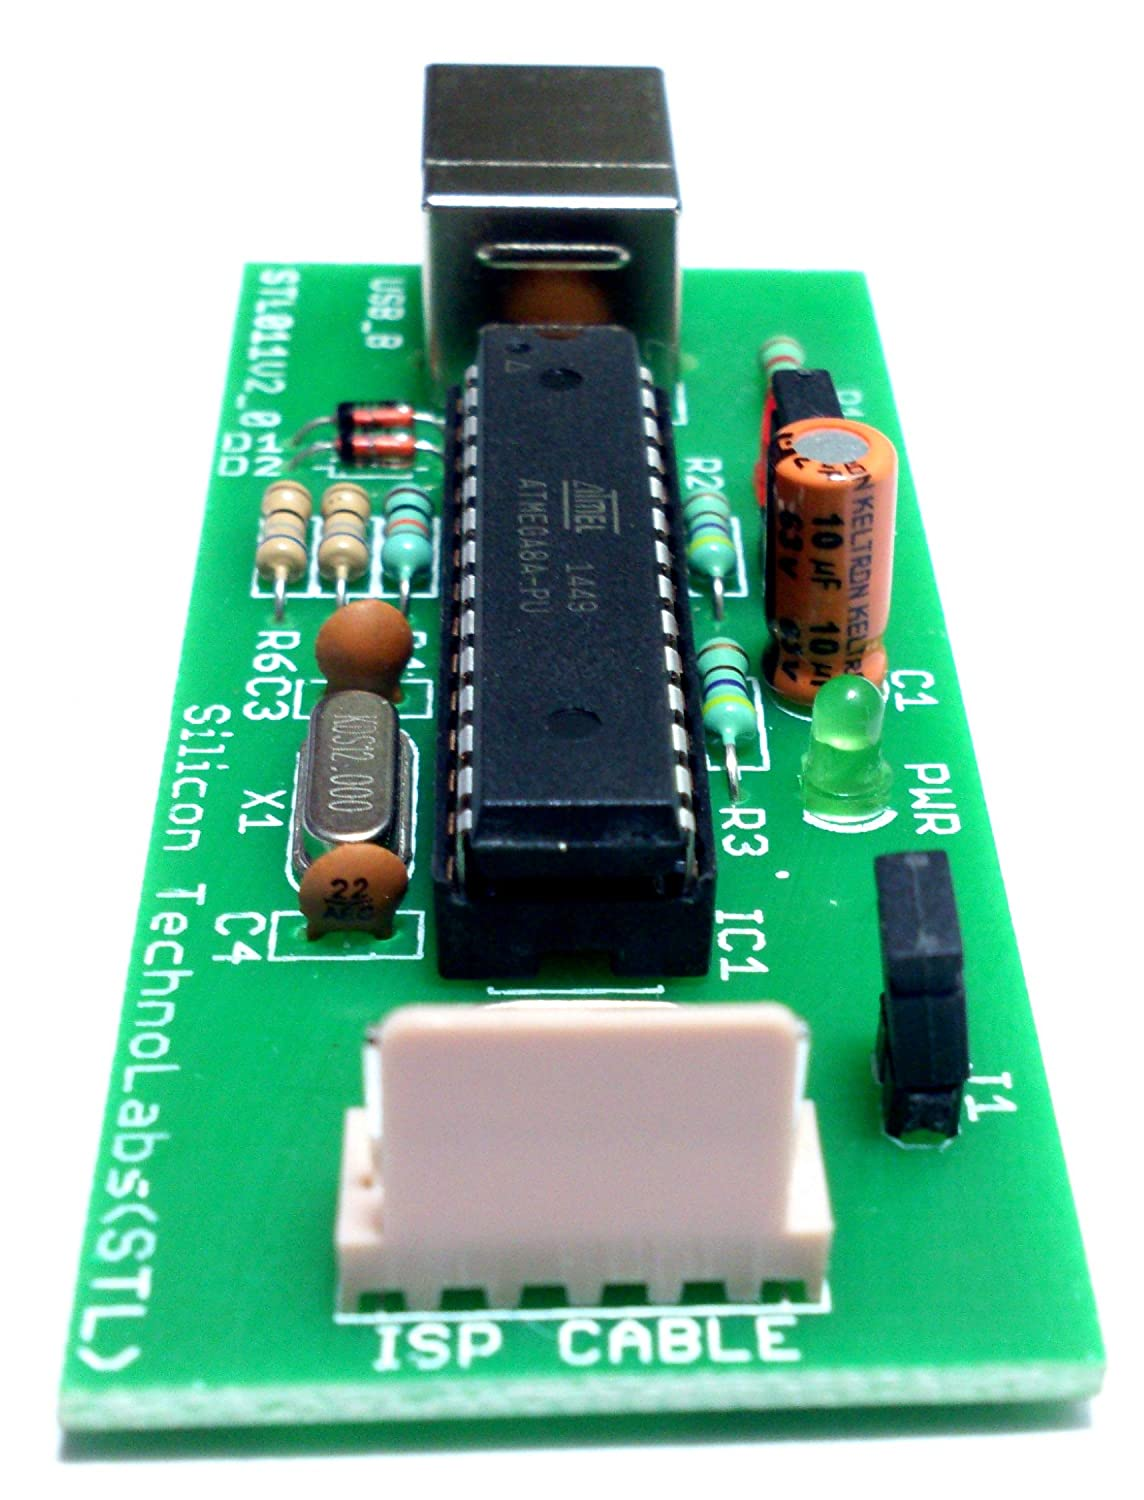 Buy 8051 Avr Usb Isp Programmer For 89s51 89s52 Etc Programming Many Atmega Tiny And Classic Atmel Free Cable Supports 89s8252